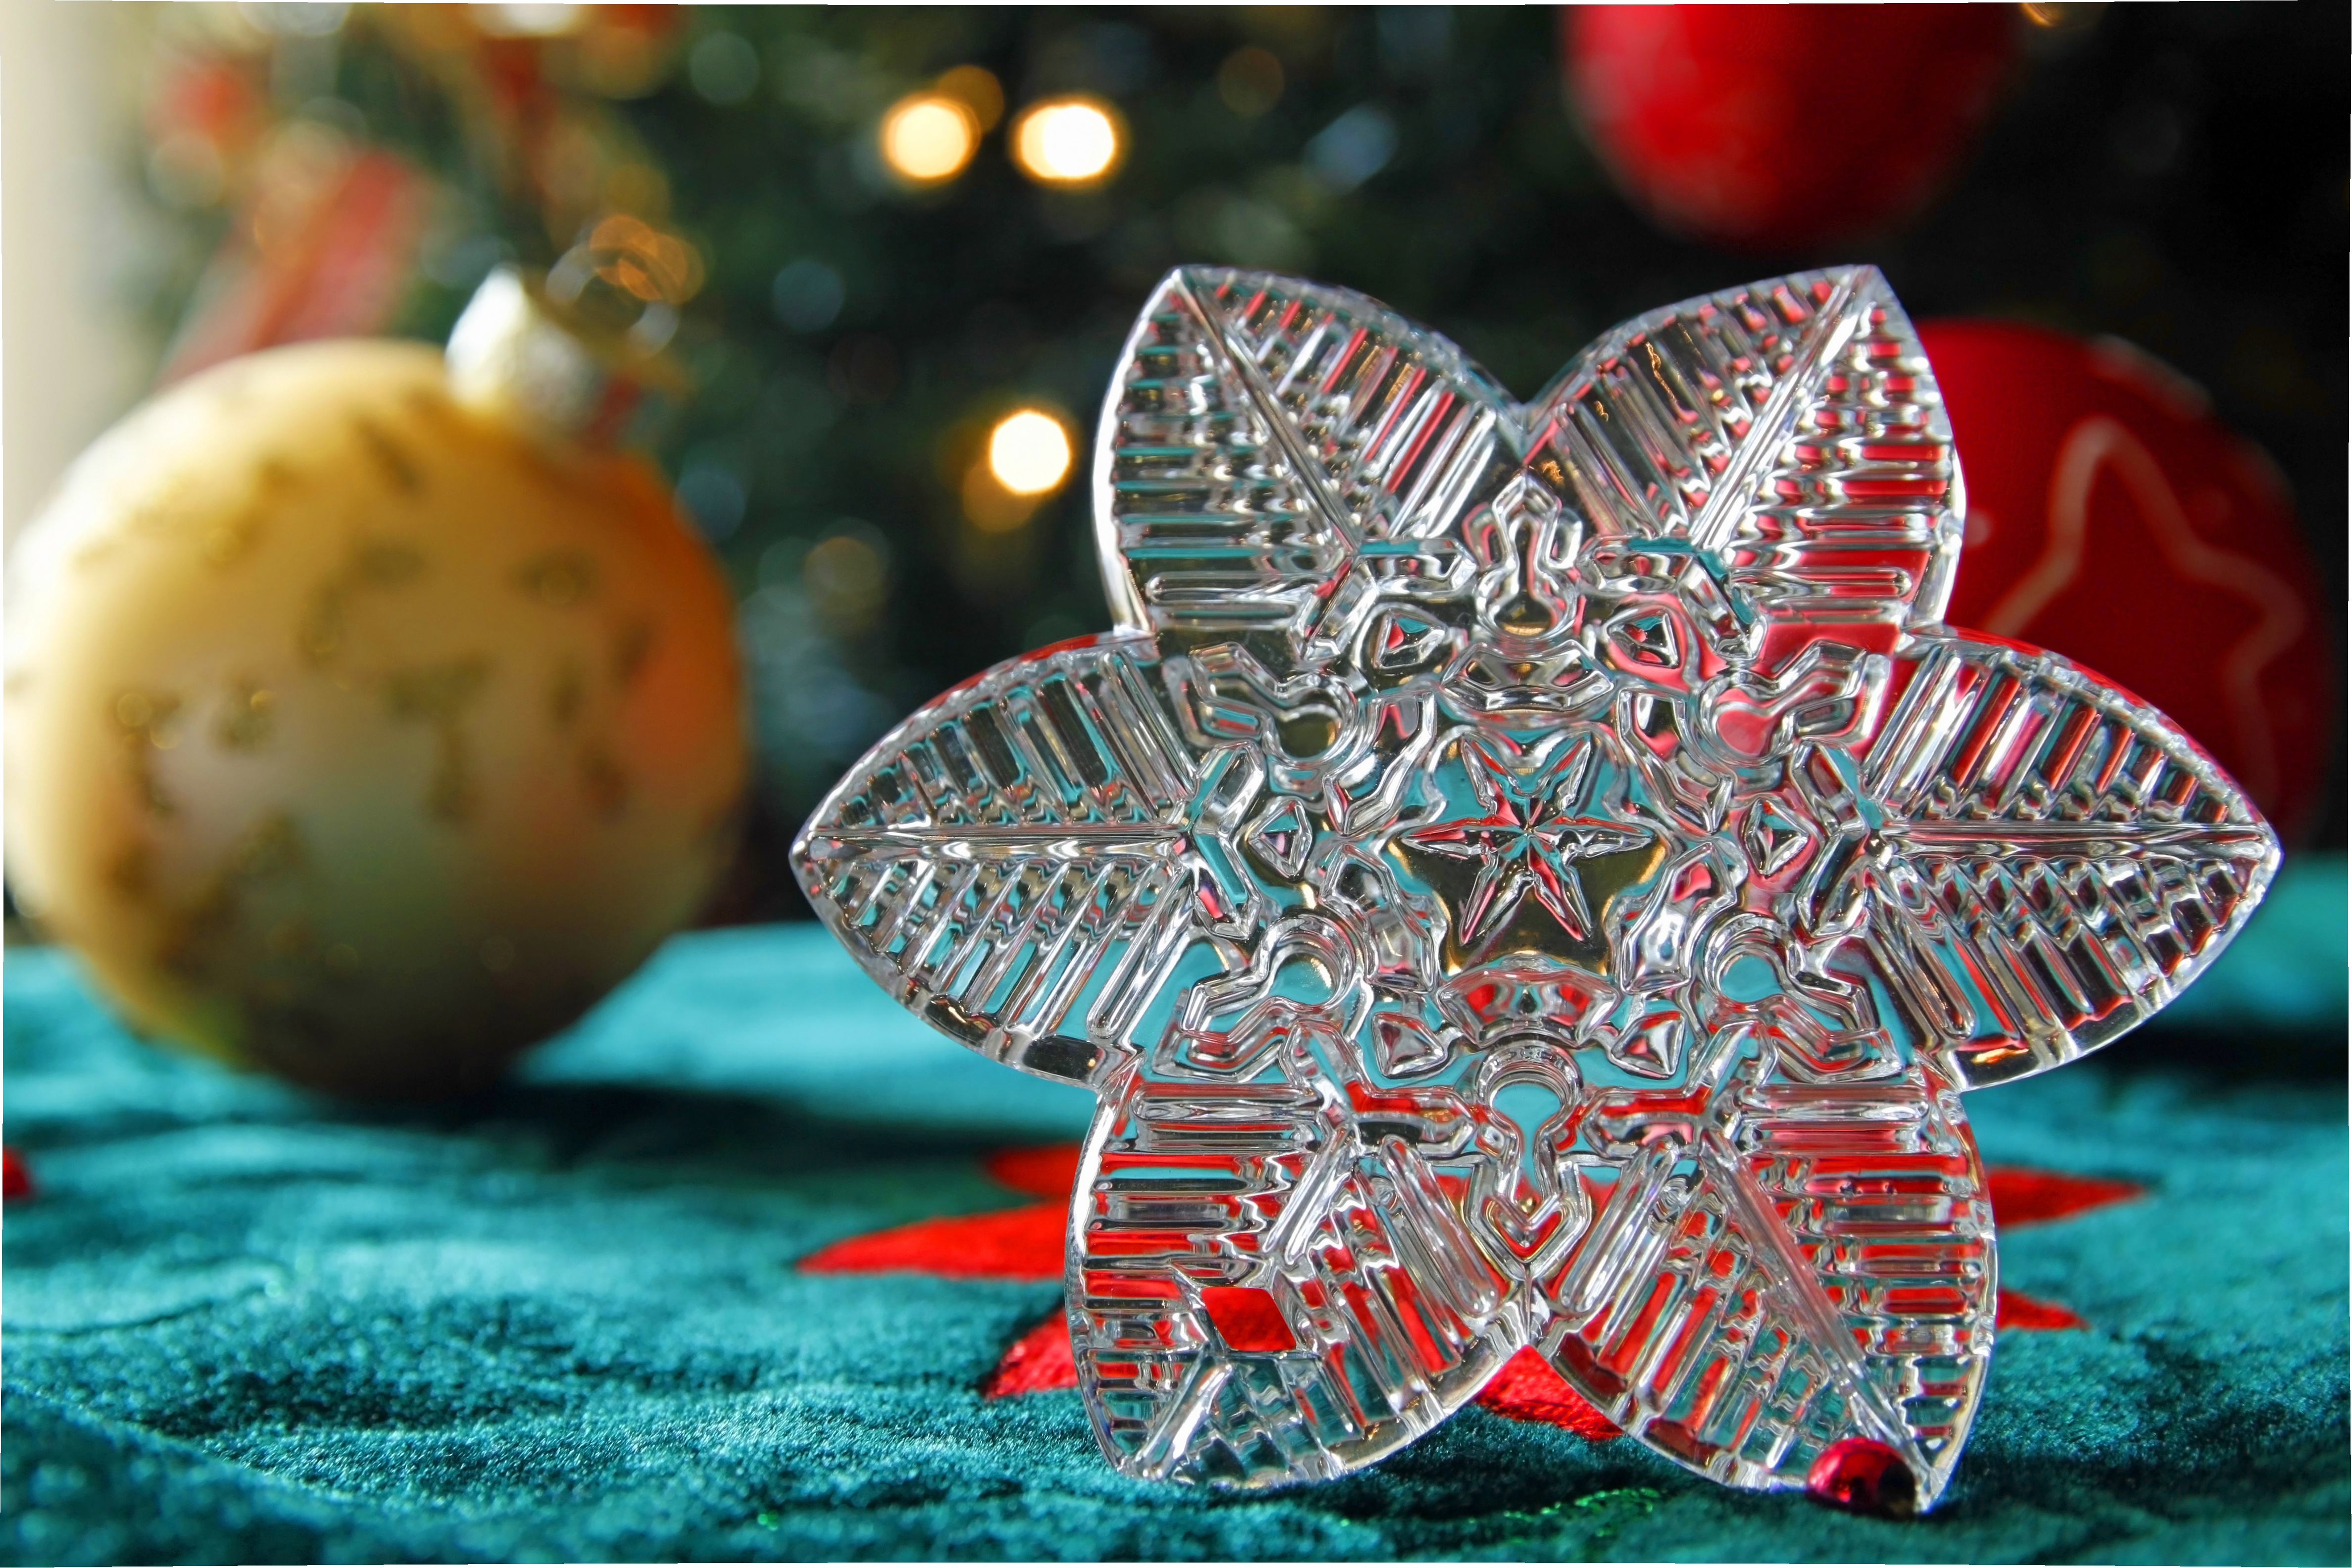 Waterford Crystal Gifts for Christmas